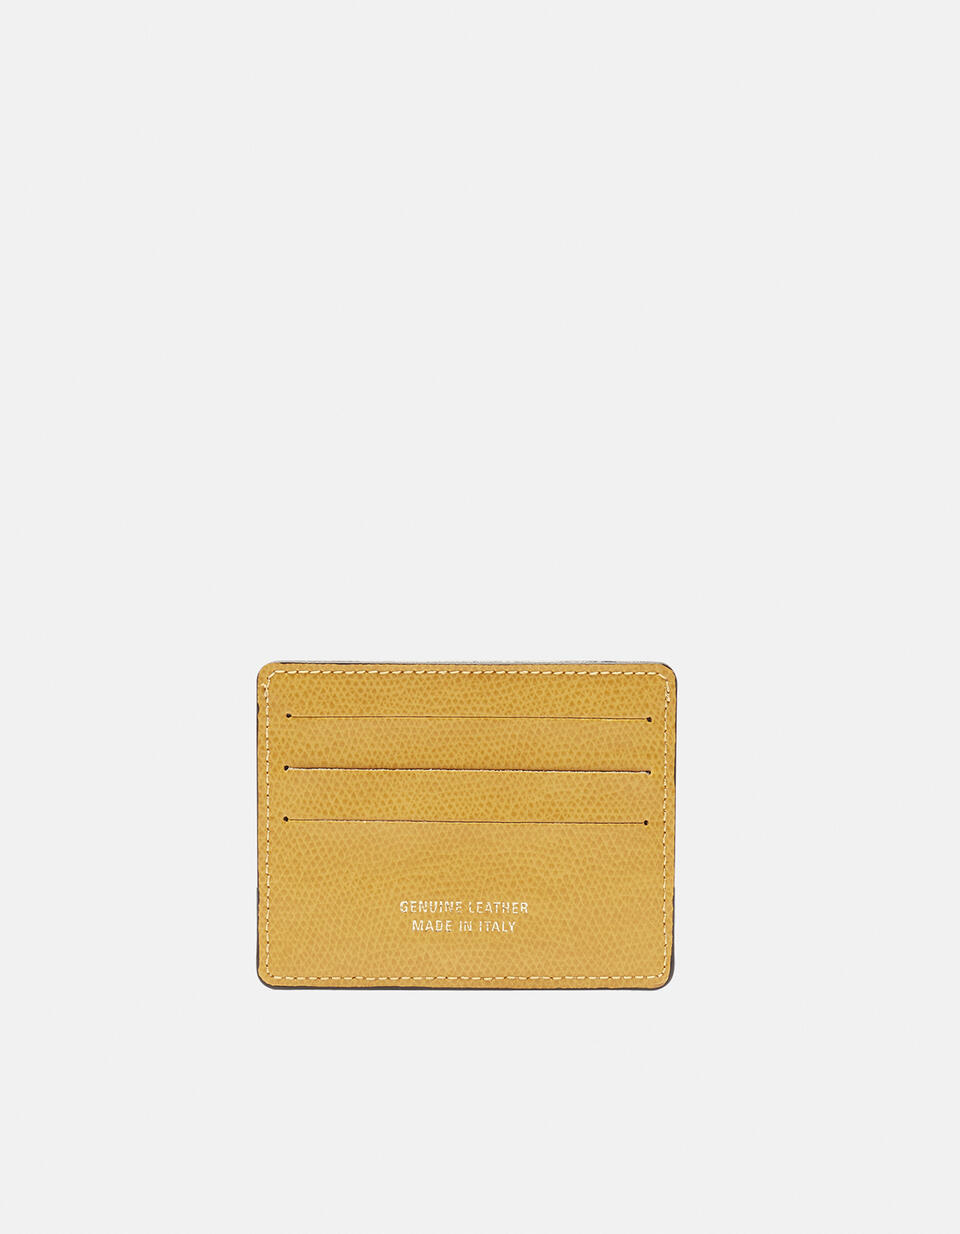 Bella credit car holder with space for banknotes GIALLO Cuoieria Fiorentina